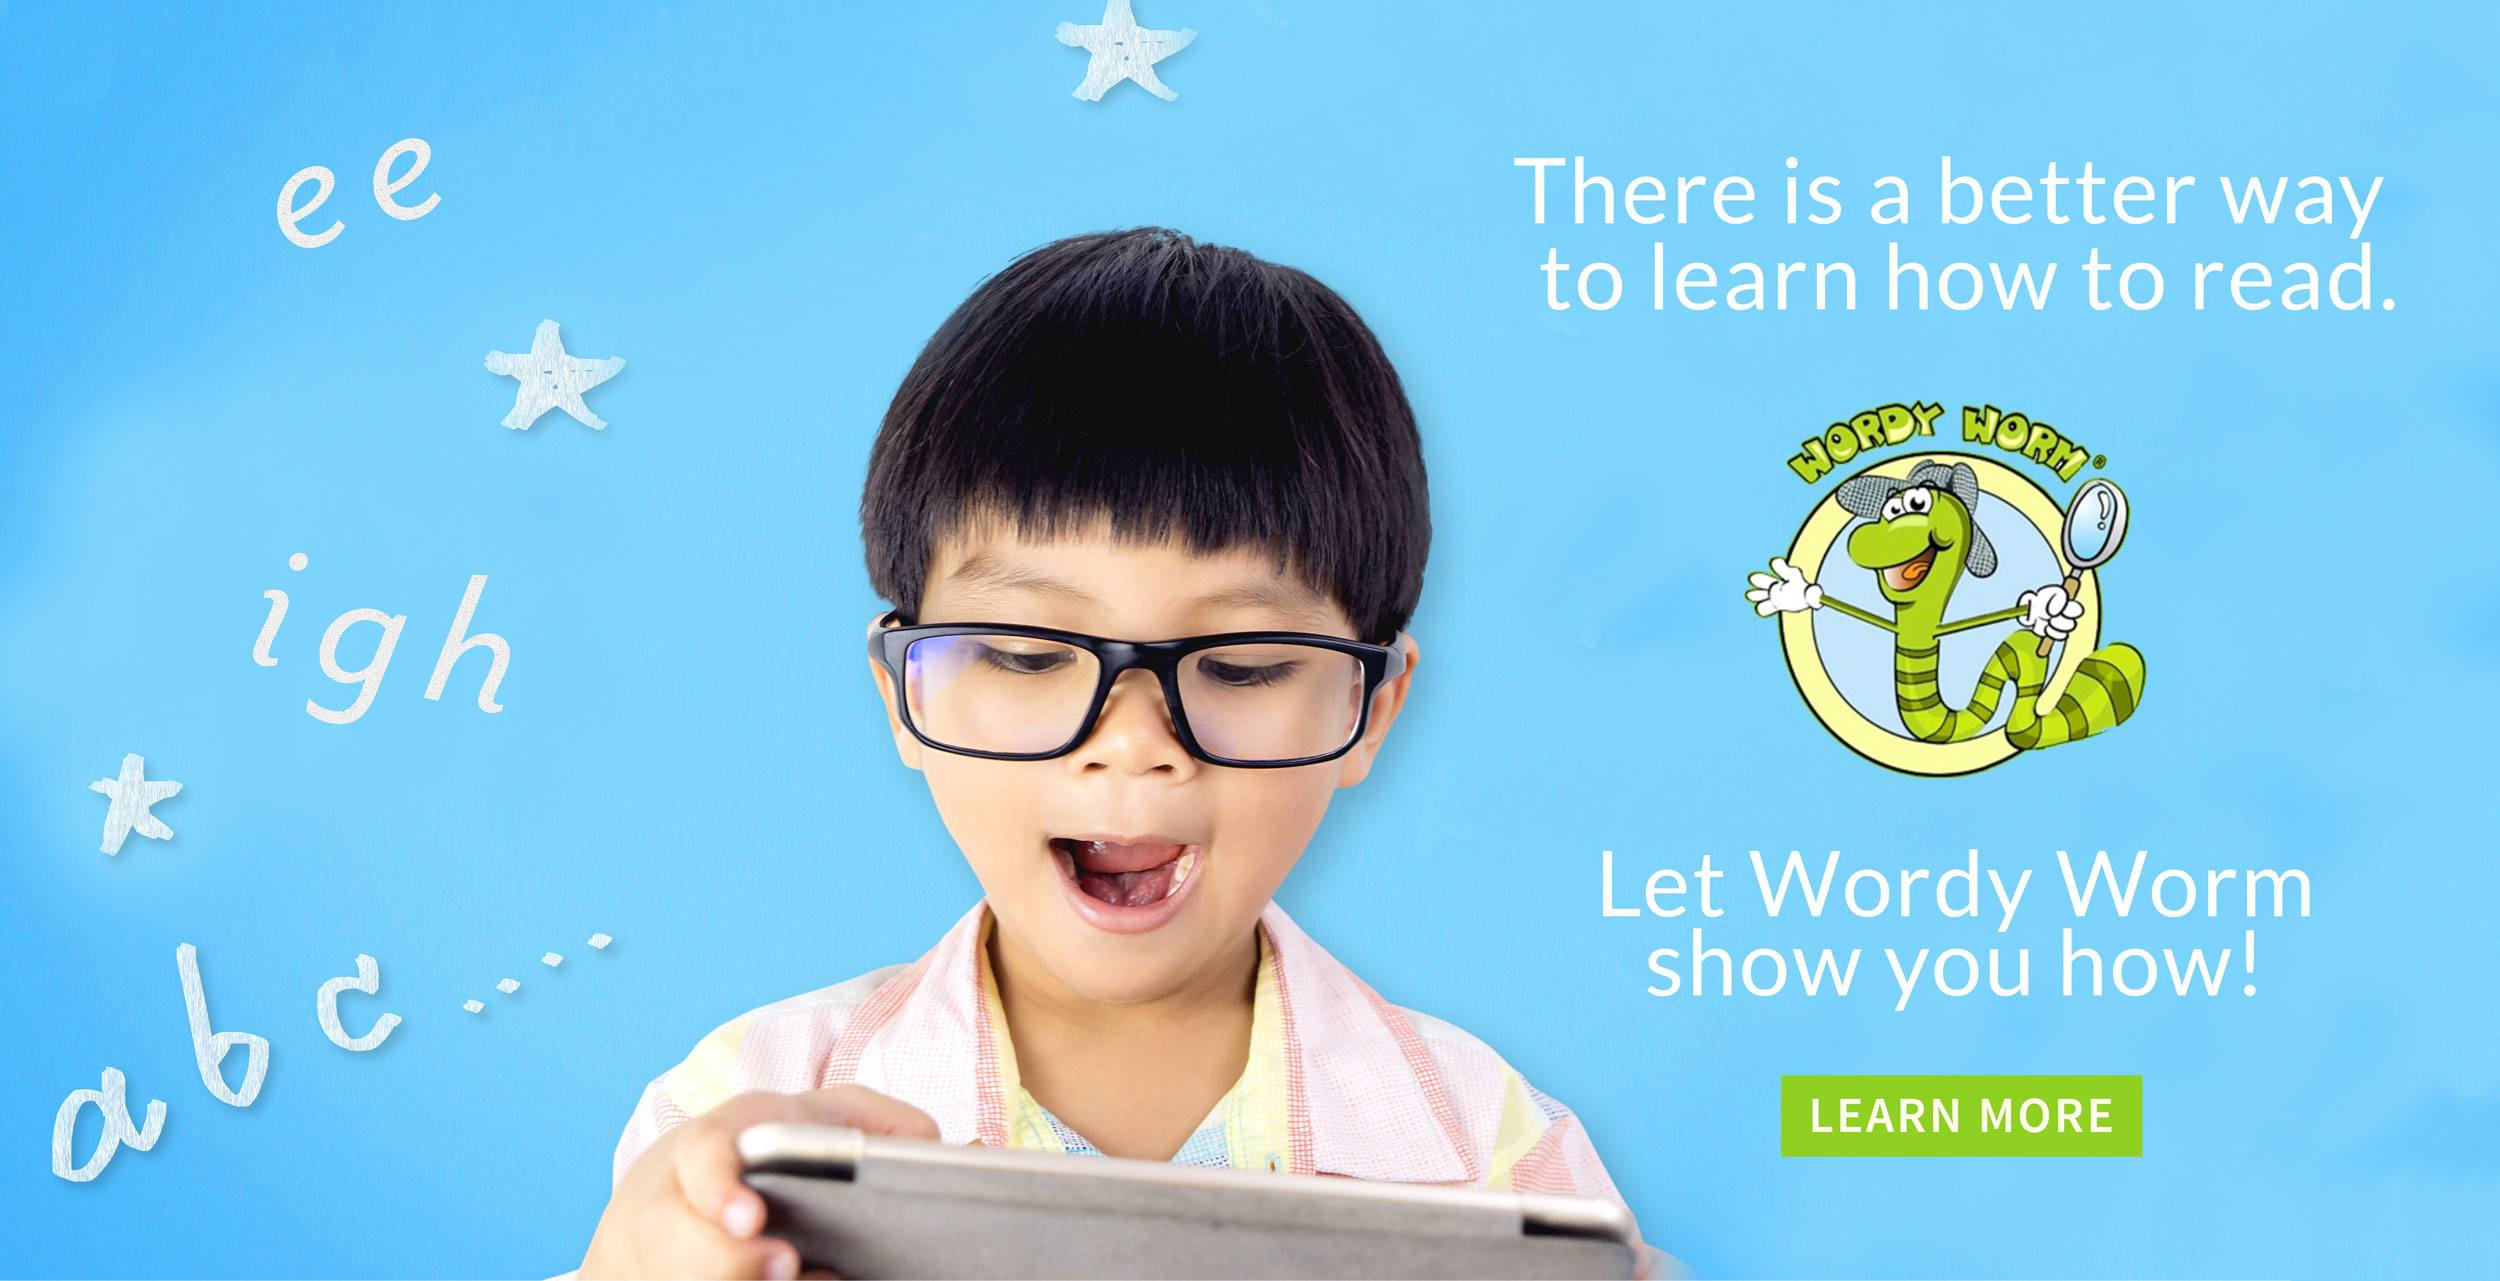 There is a better way to learn how to read with this phonics reading program. Let Wordy Worm show you how!